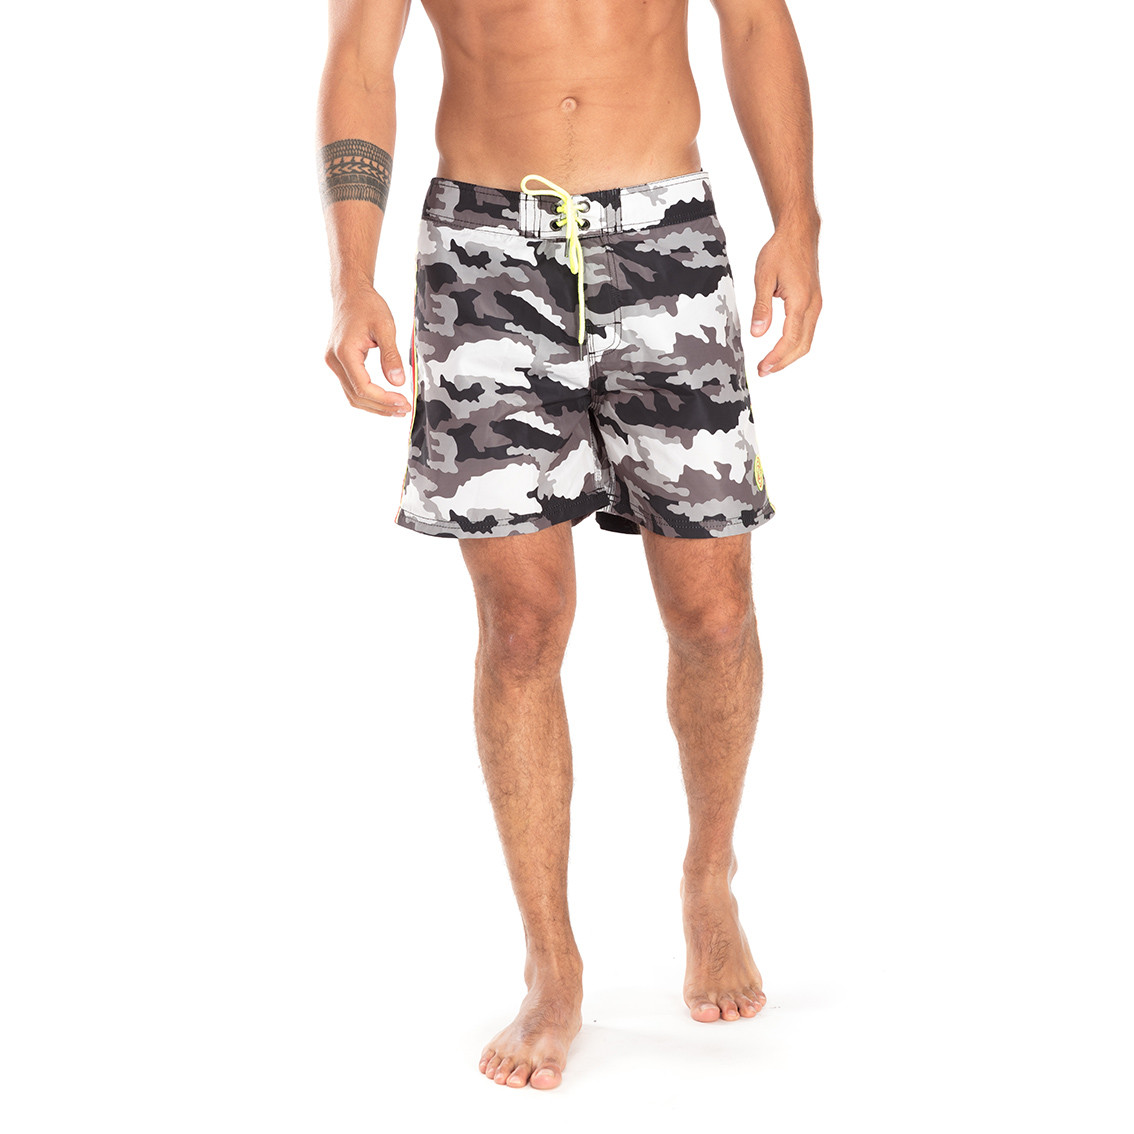 Boardshort homme freegun camouflage vert (photo)